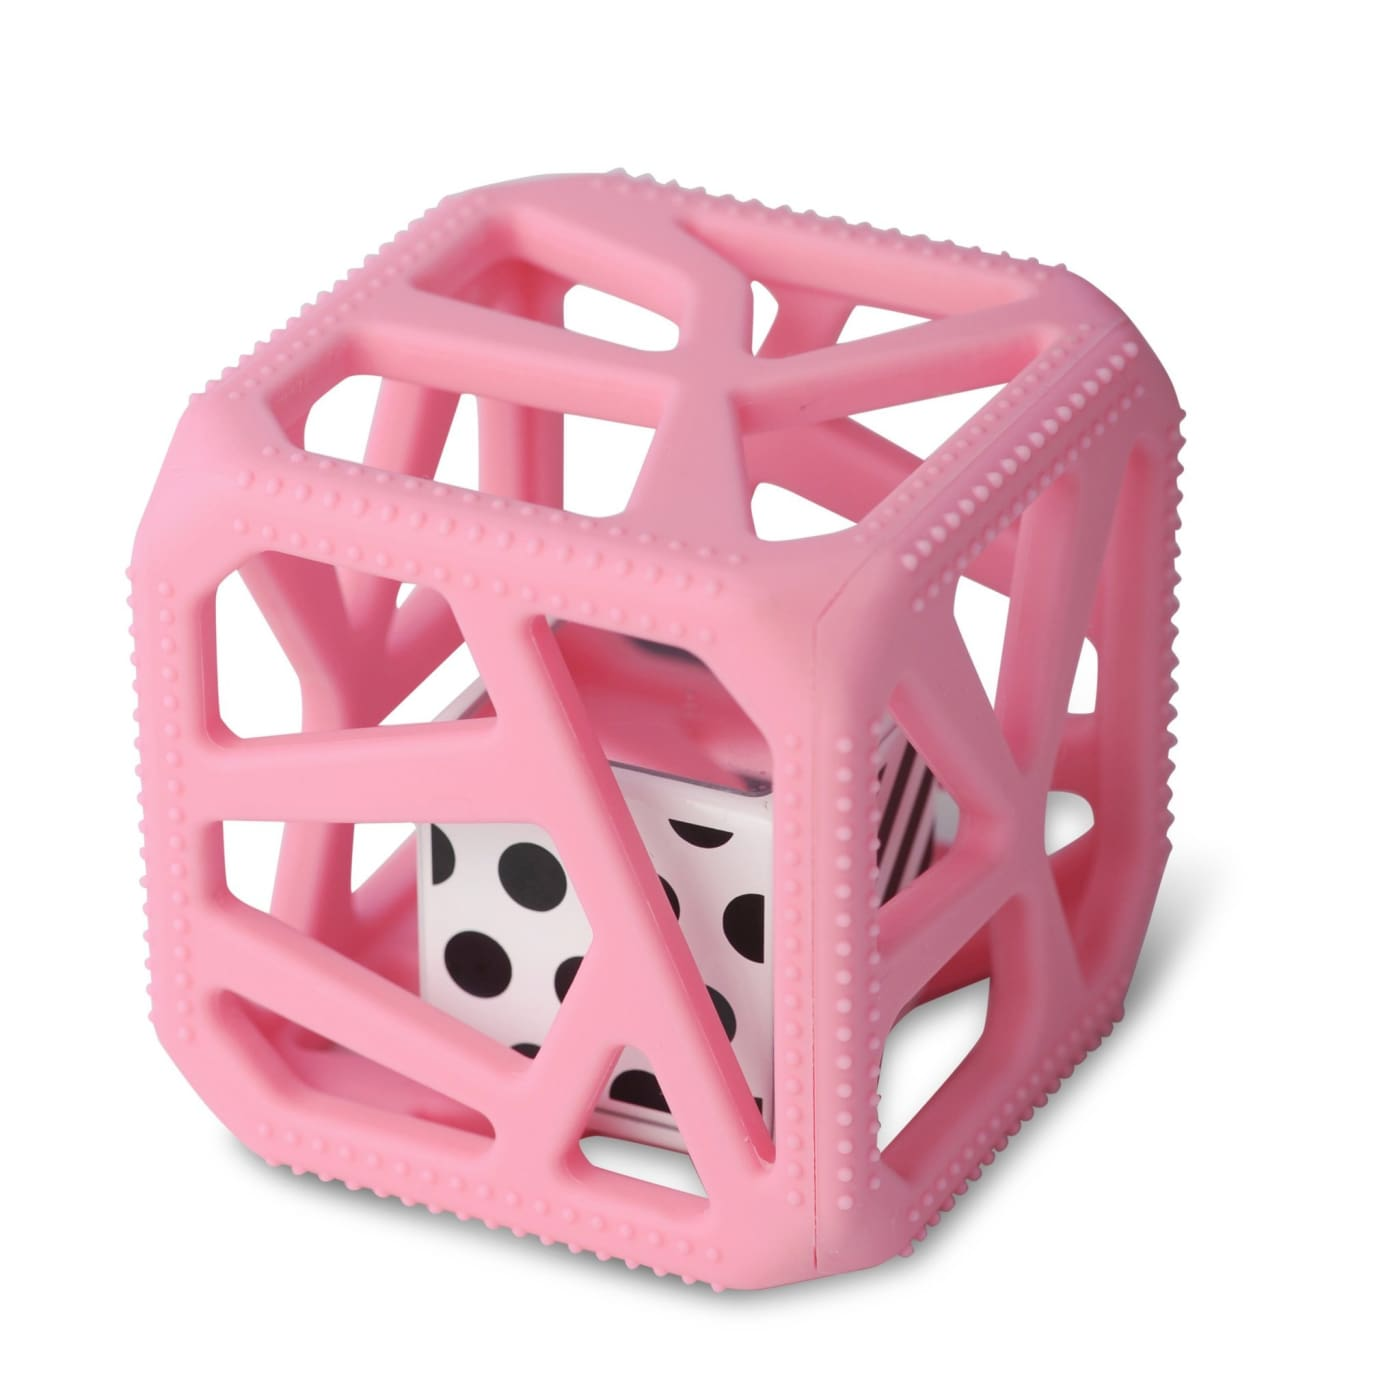 Malarkey Kids Chew Cube - Pink - NURSING & FEEDING - TEETHERS/TEETHING JEWELLERY